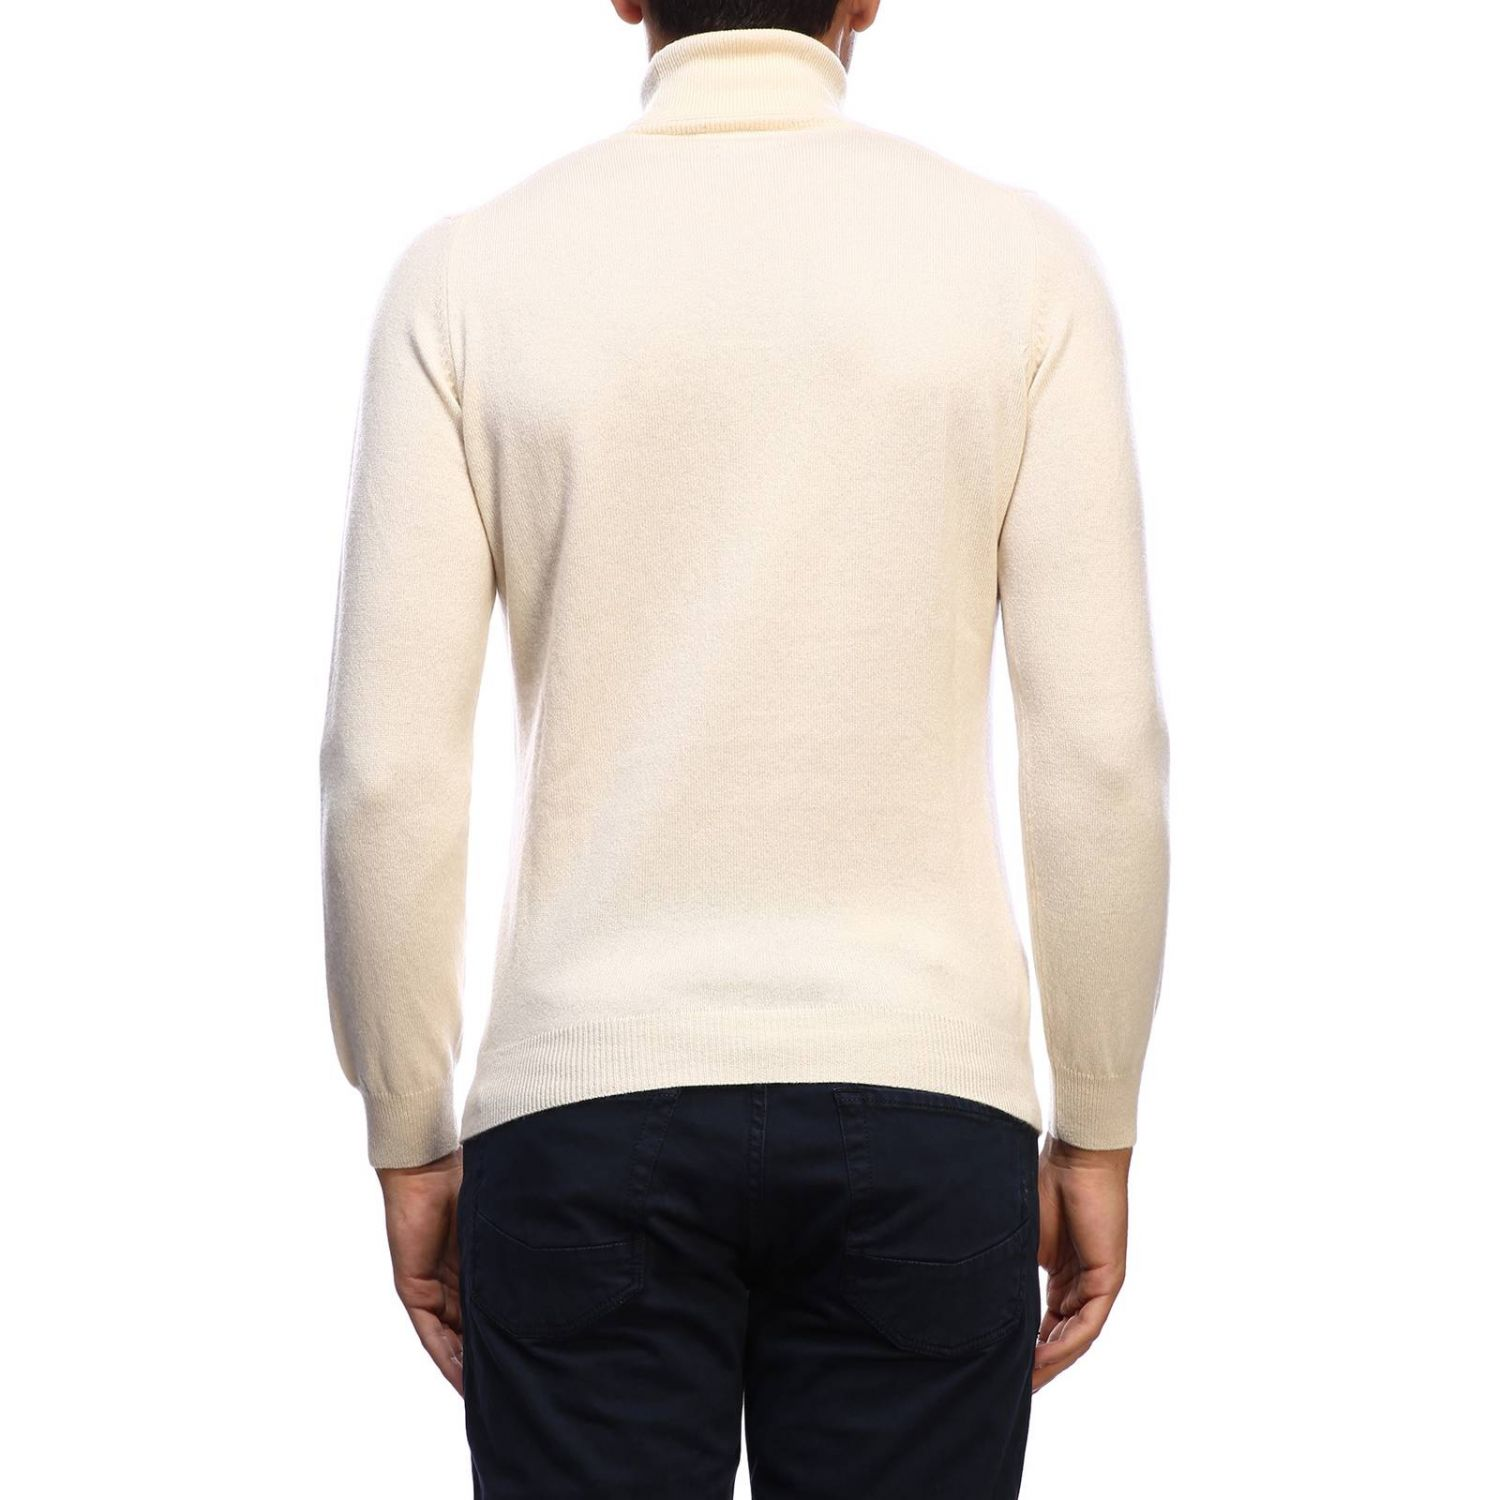 Pullover herren Osvaldo Bruni yellow cream 3